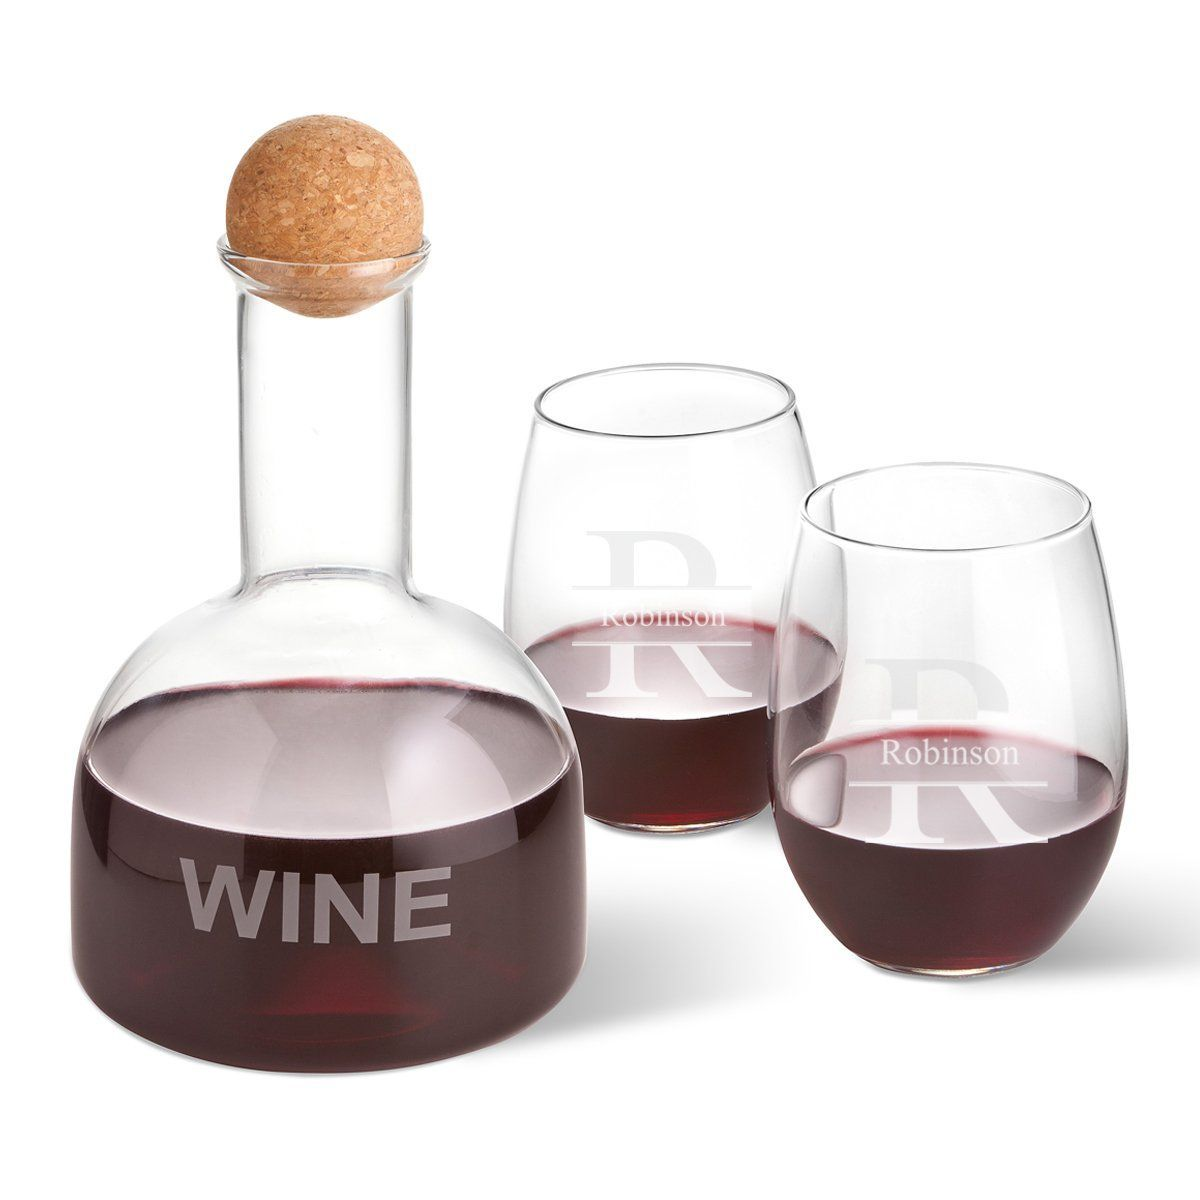 Personalized-Wine-Decanter-in-Wood-Crate-with-set-of-2-Stemless-Wine-Glasses